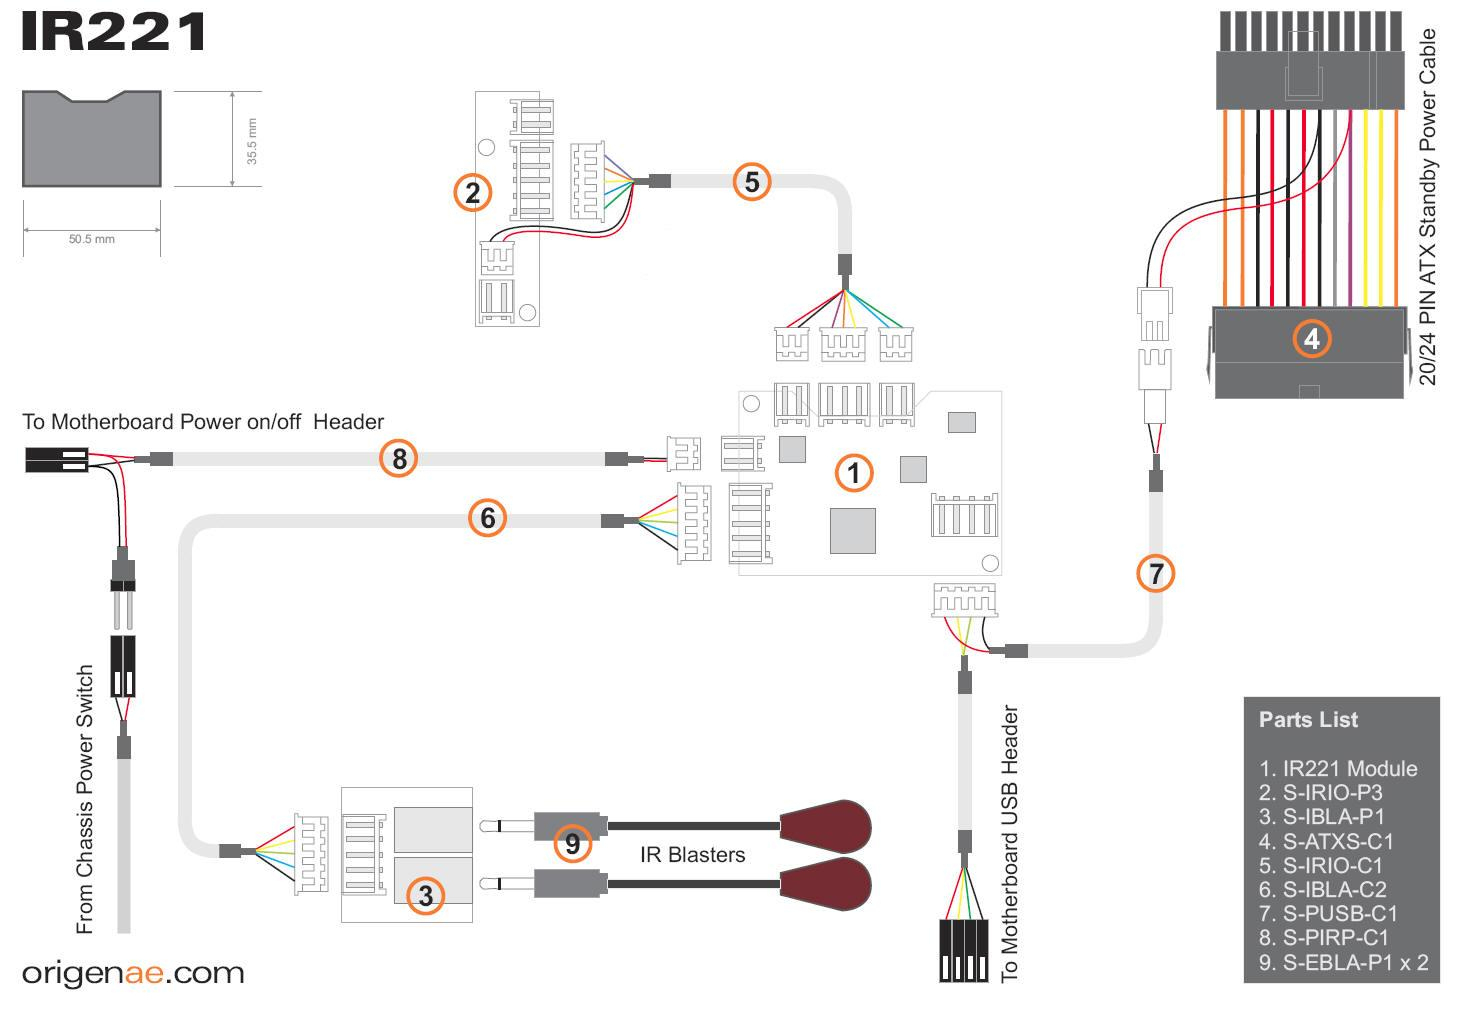 Usb To Db9 Cable Wiring Diagram | Wiring Diagram - Usb To Micro Usb Wiring Diagram